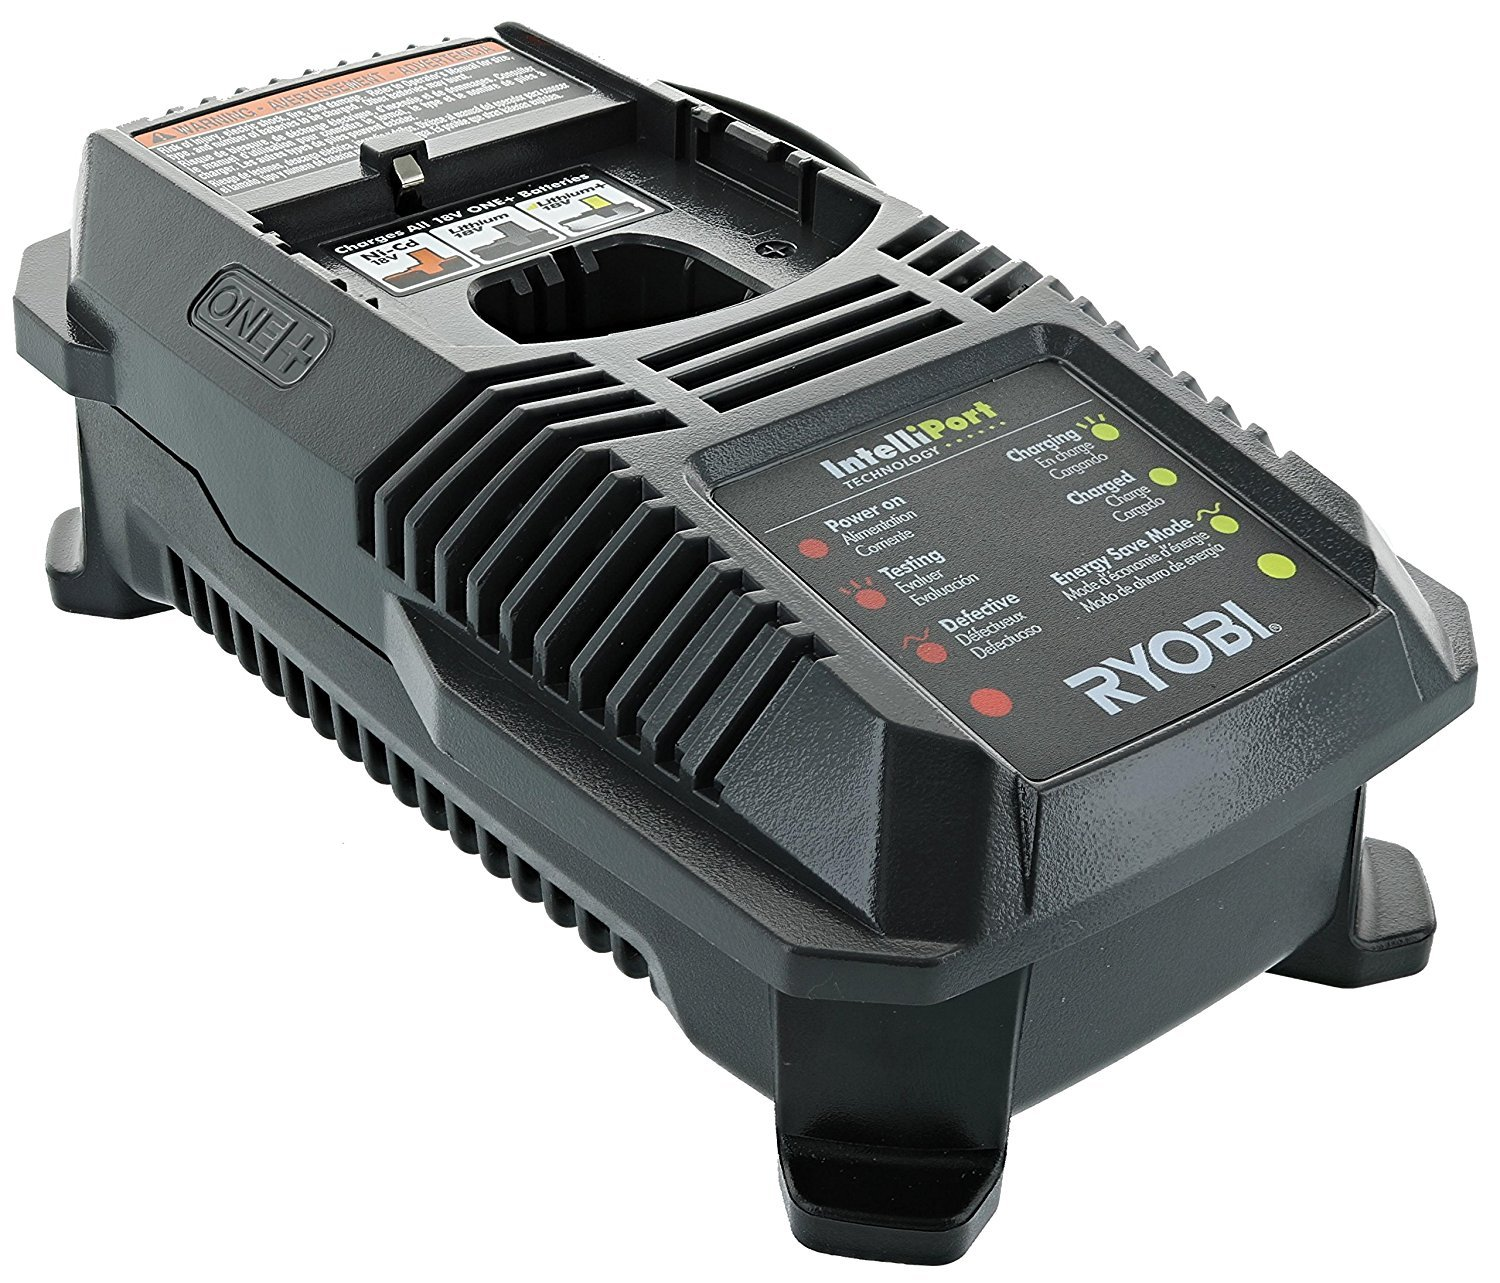 Ryobi P118 Lithium Ion  Dual Chemistry Battery Charger for One+ 18 Volt Batteries (Battery Not Included / Charger Only) by Ryobi